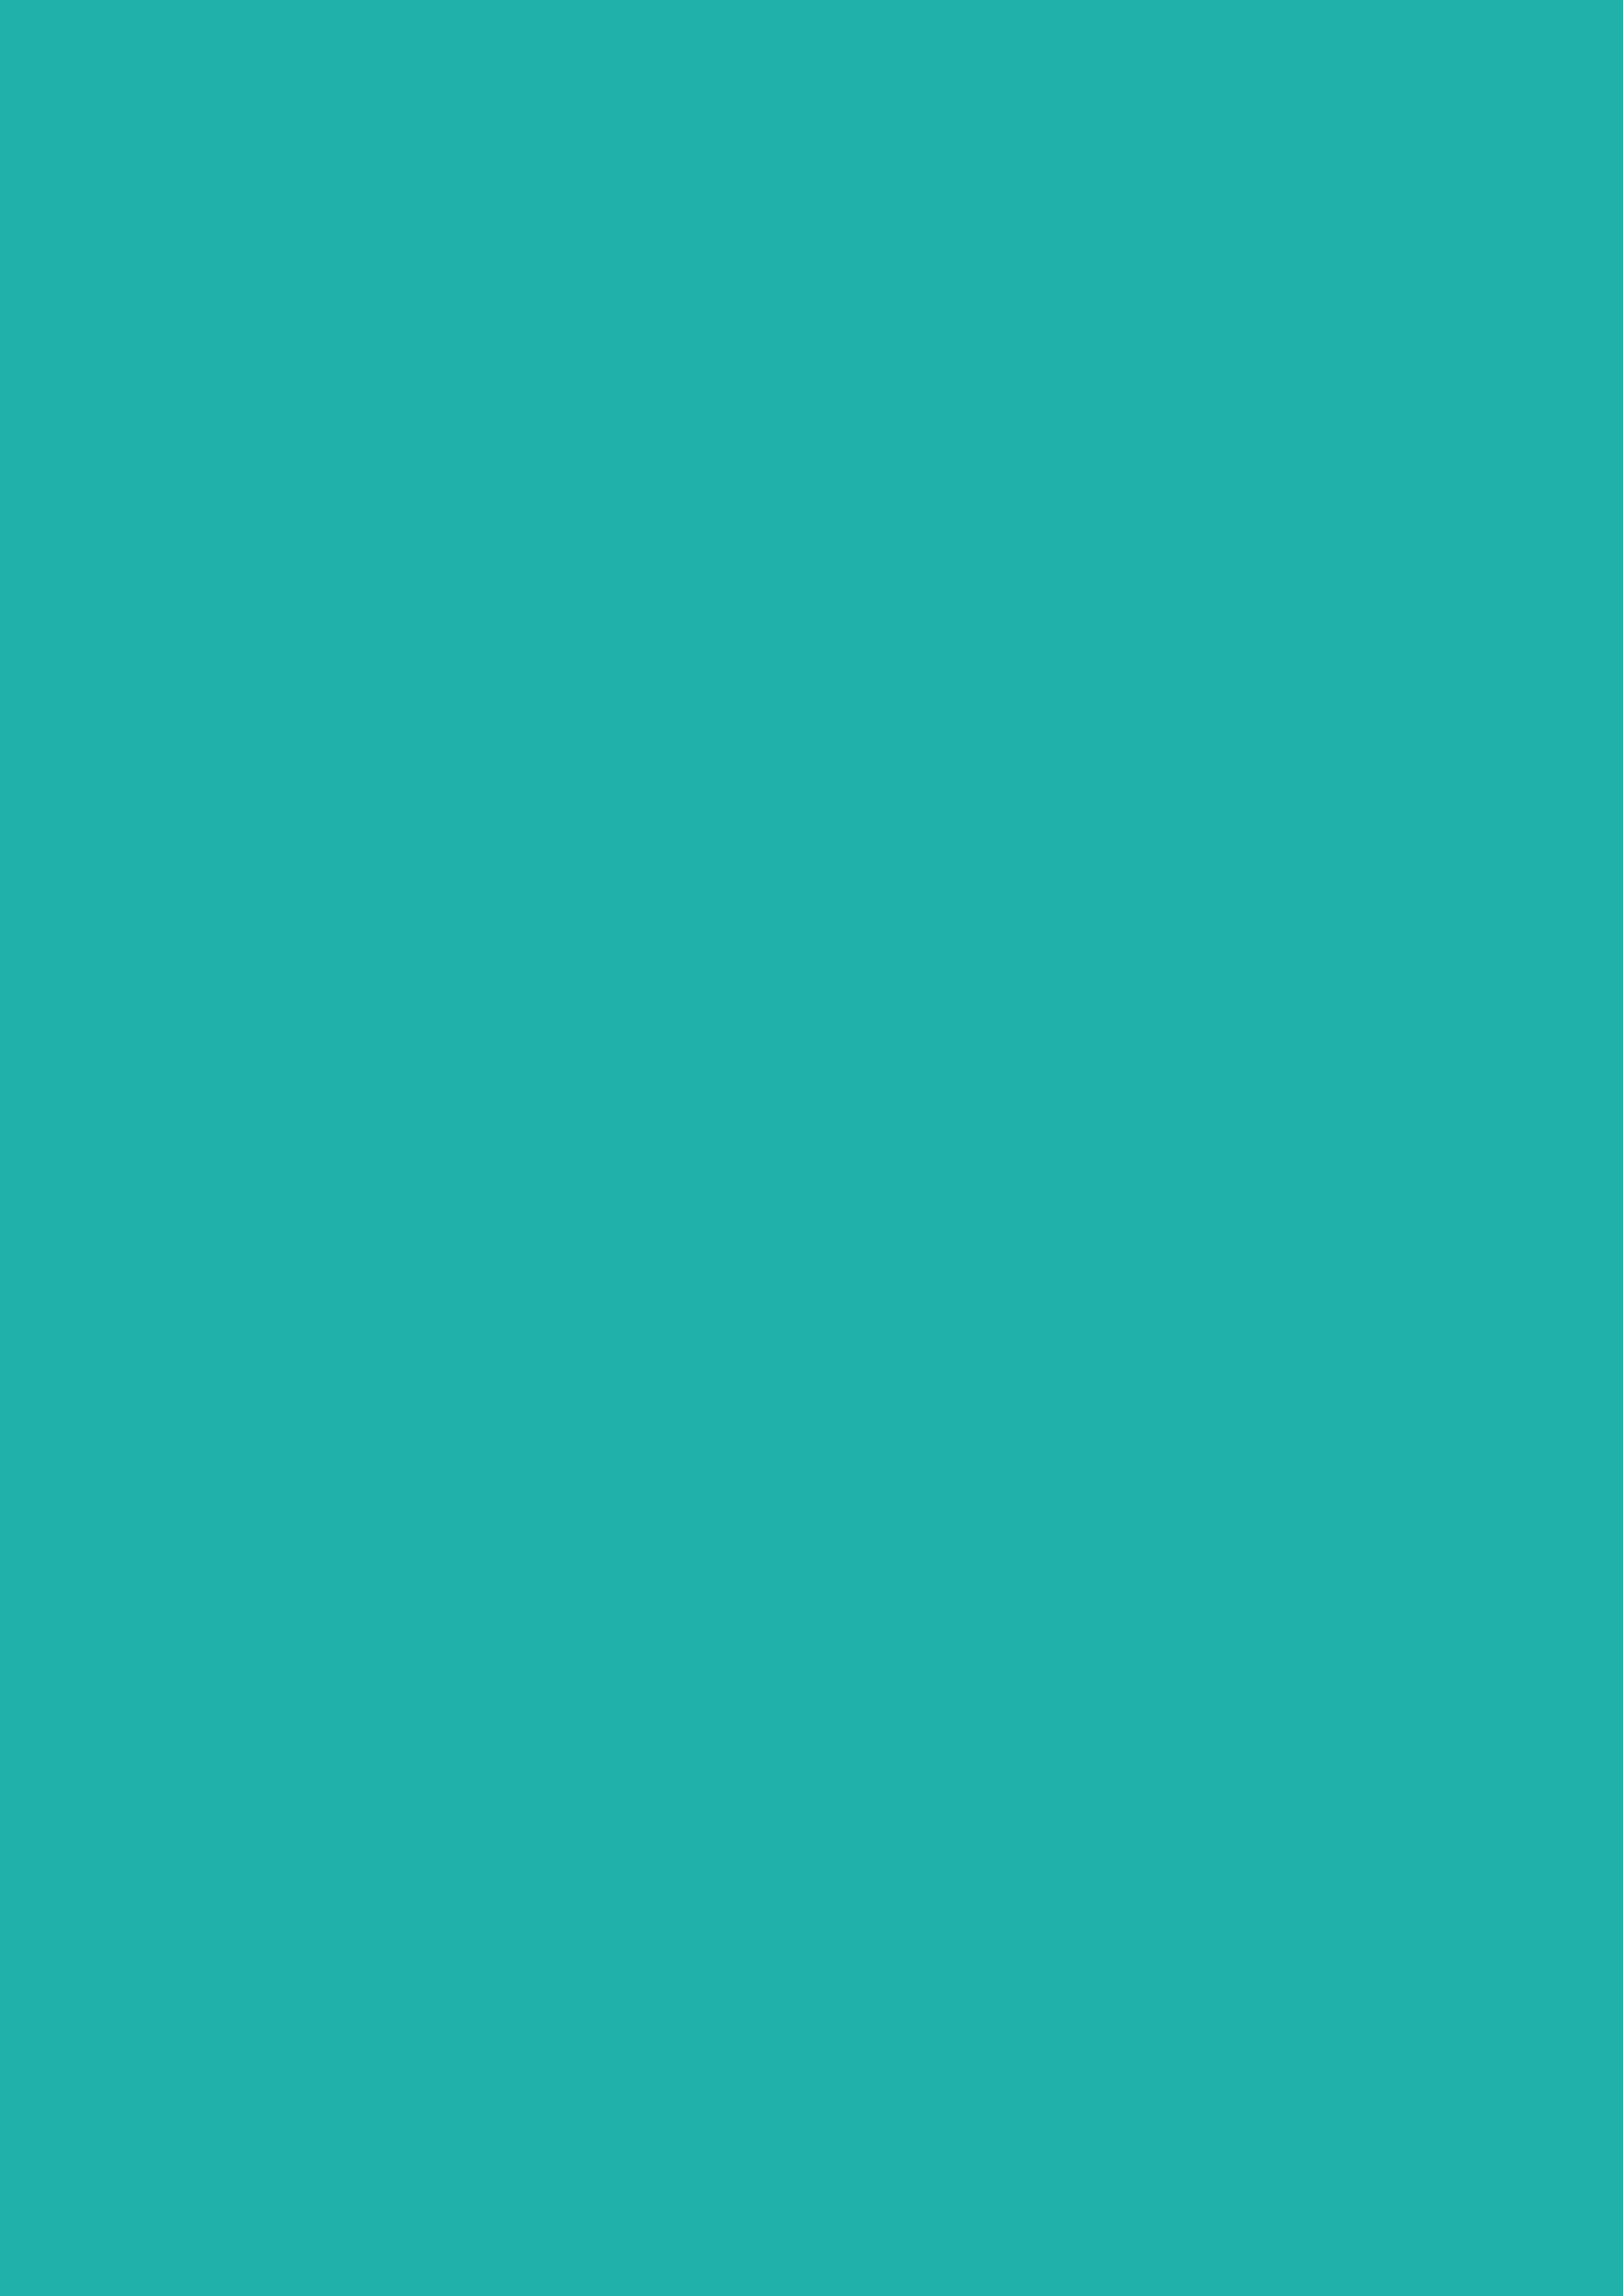 2480x3508 Light Sea Green Solid Color Background